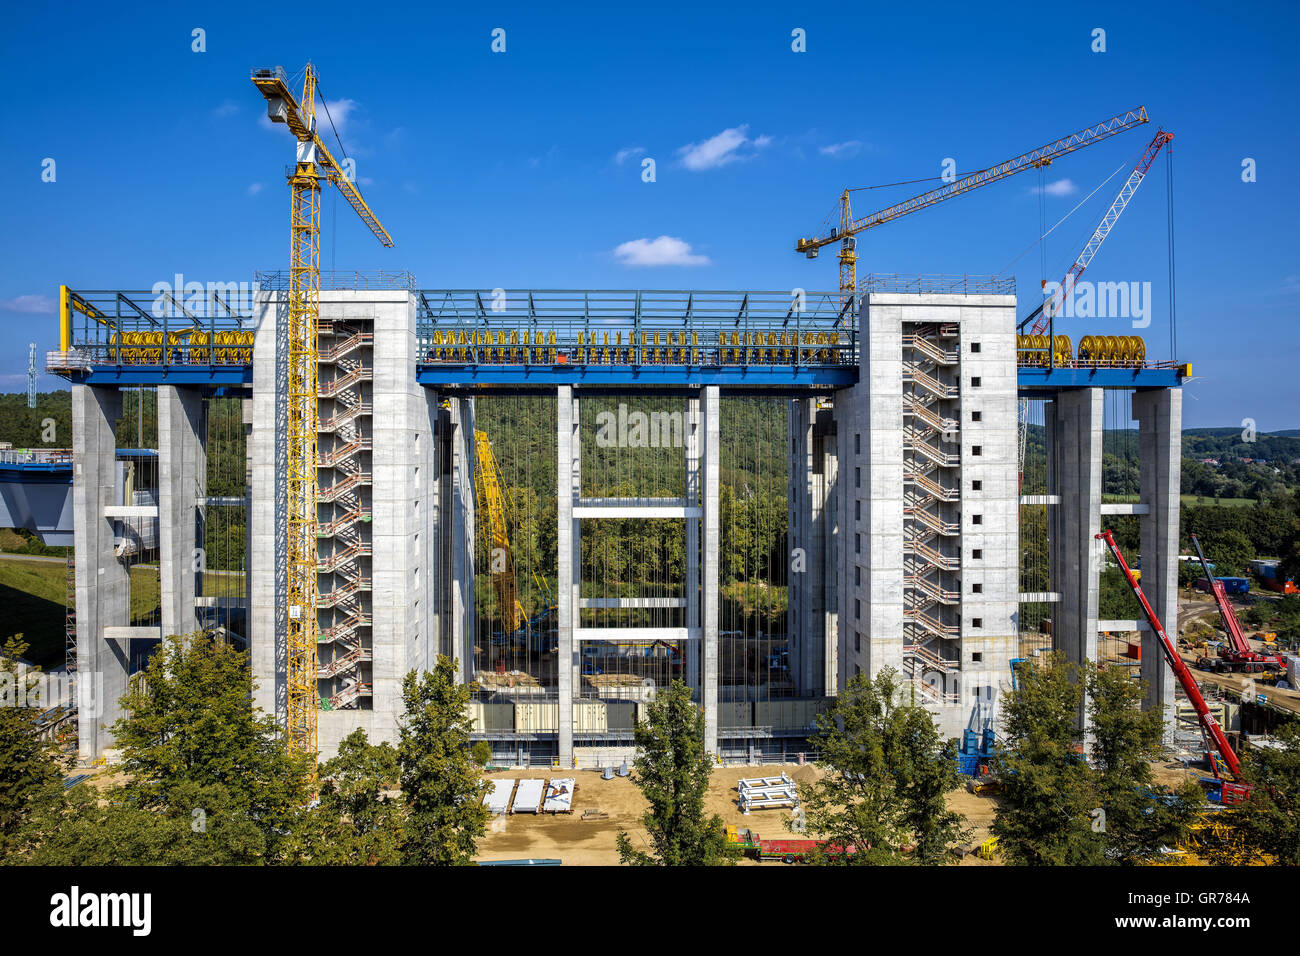 Property Under Construction New Boat Lift In Niederfinow Directly Next To The Historic Old Elevator - Stock Image